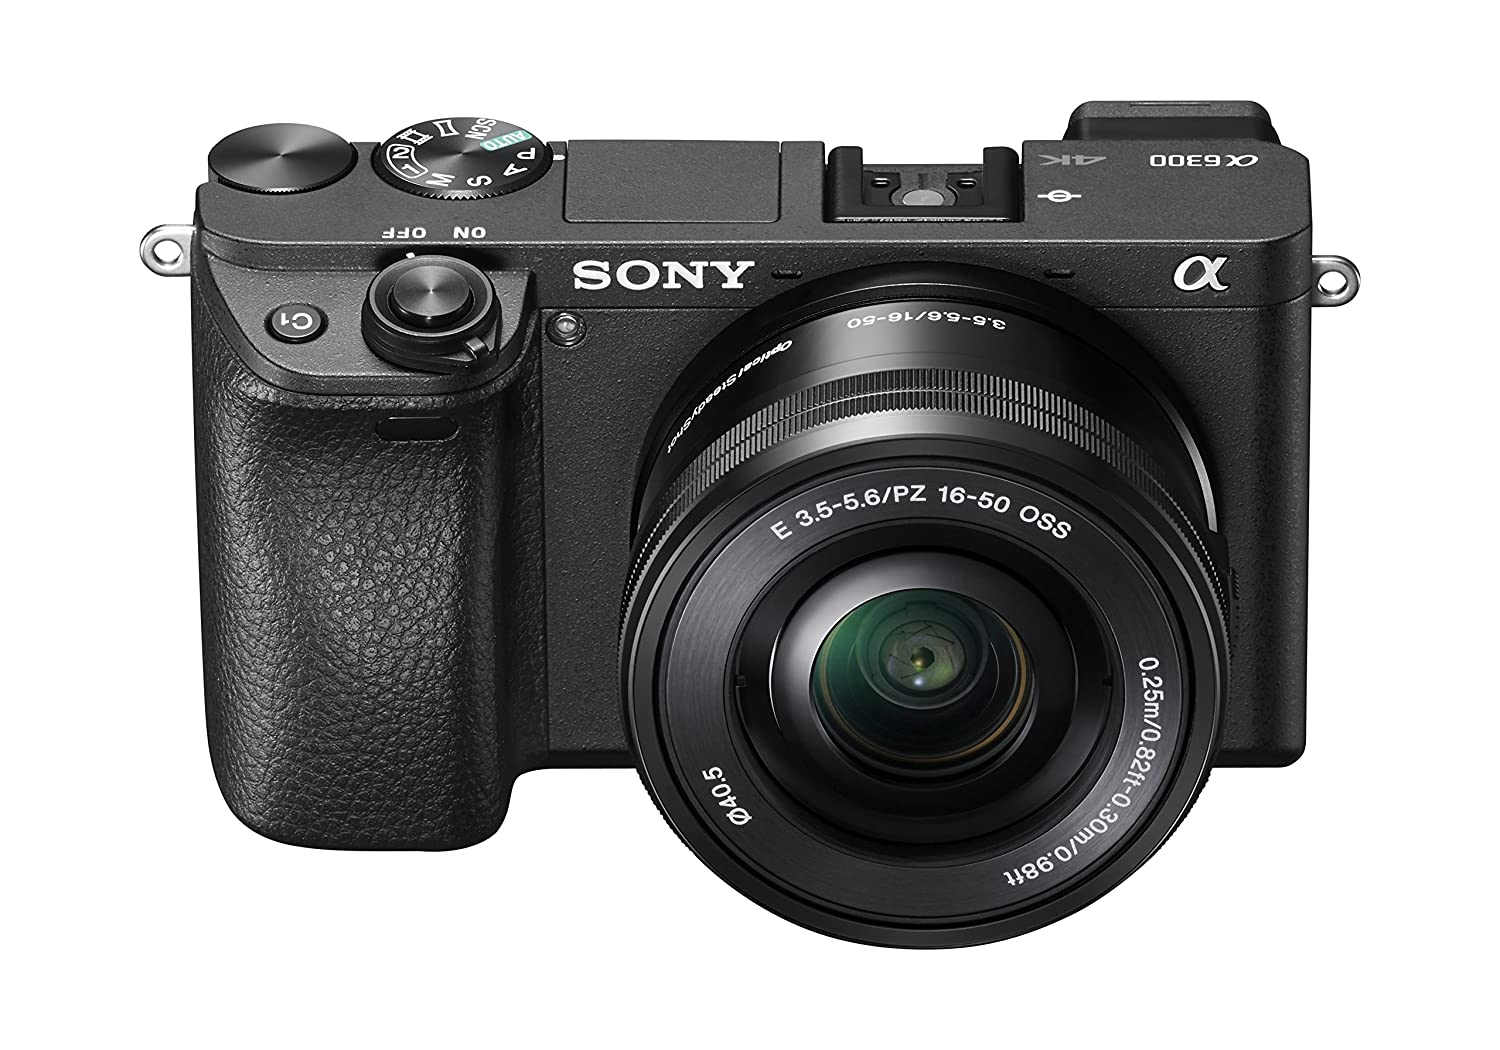 Sony Alpha a6300 Black Friday Deals 2020